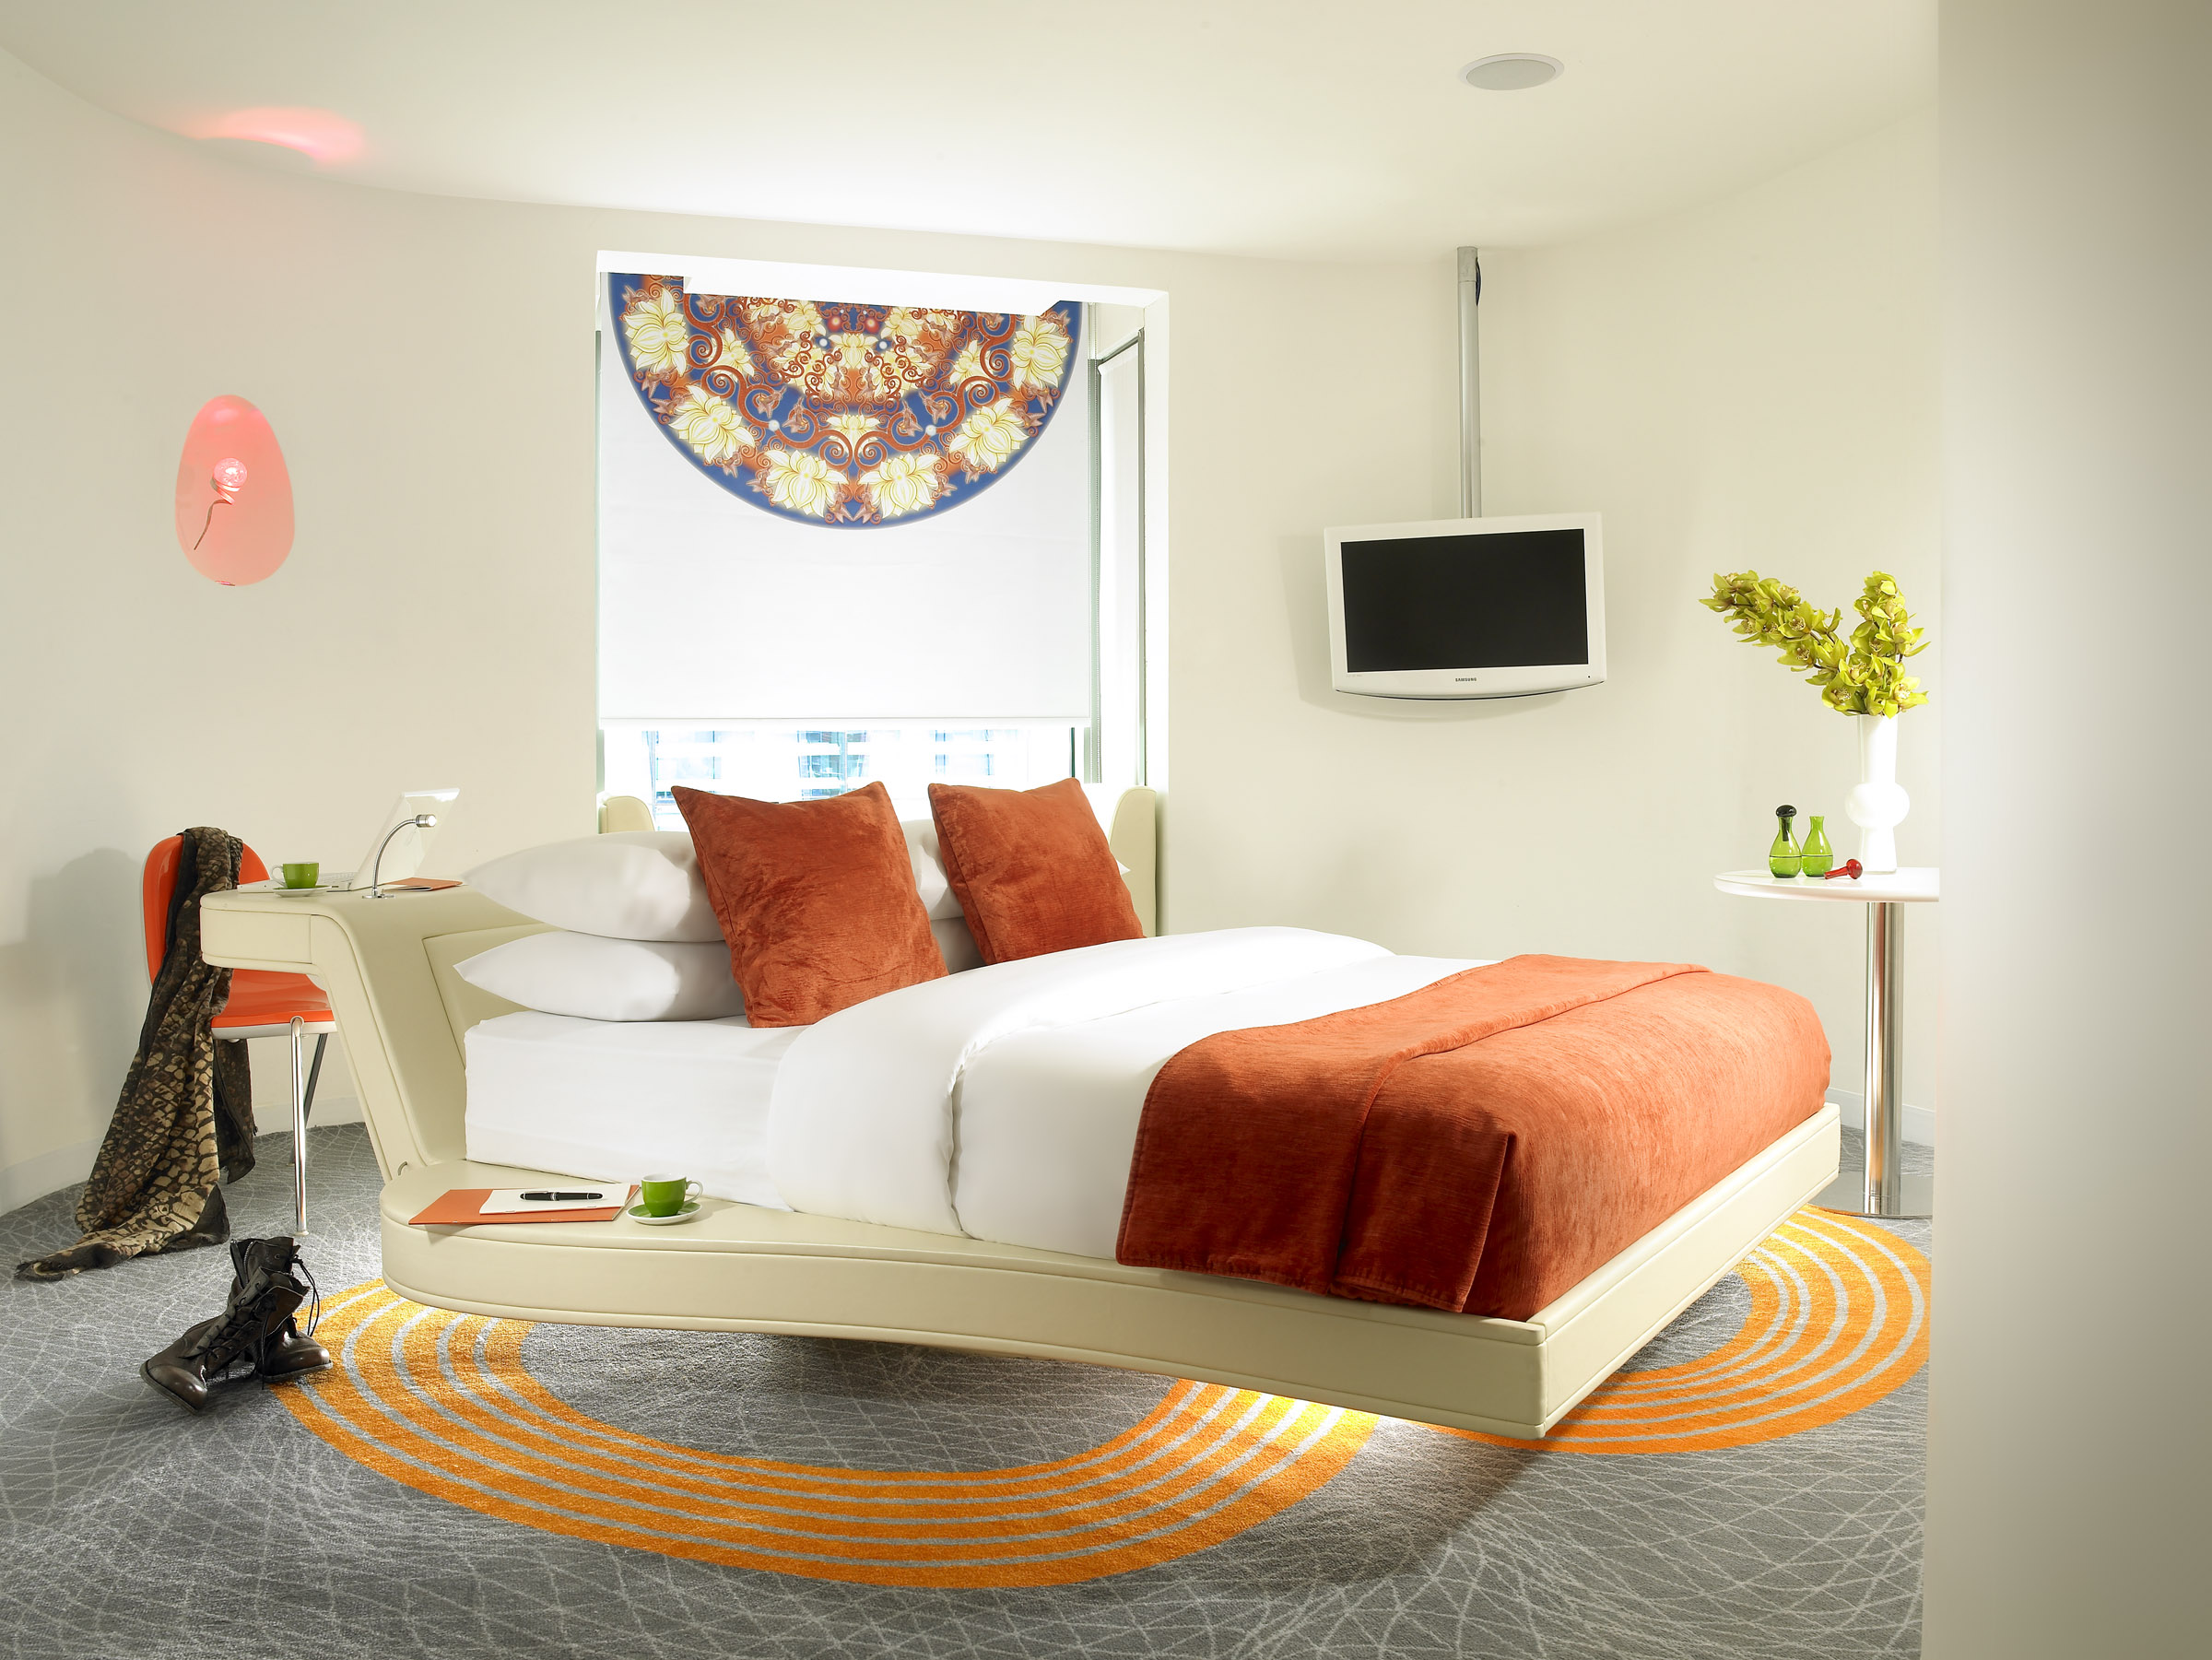 Hotels In Brighton Uk With Family Rooms